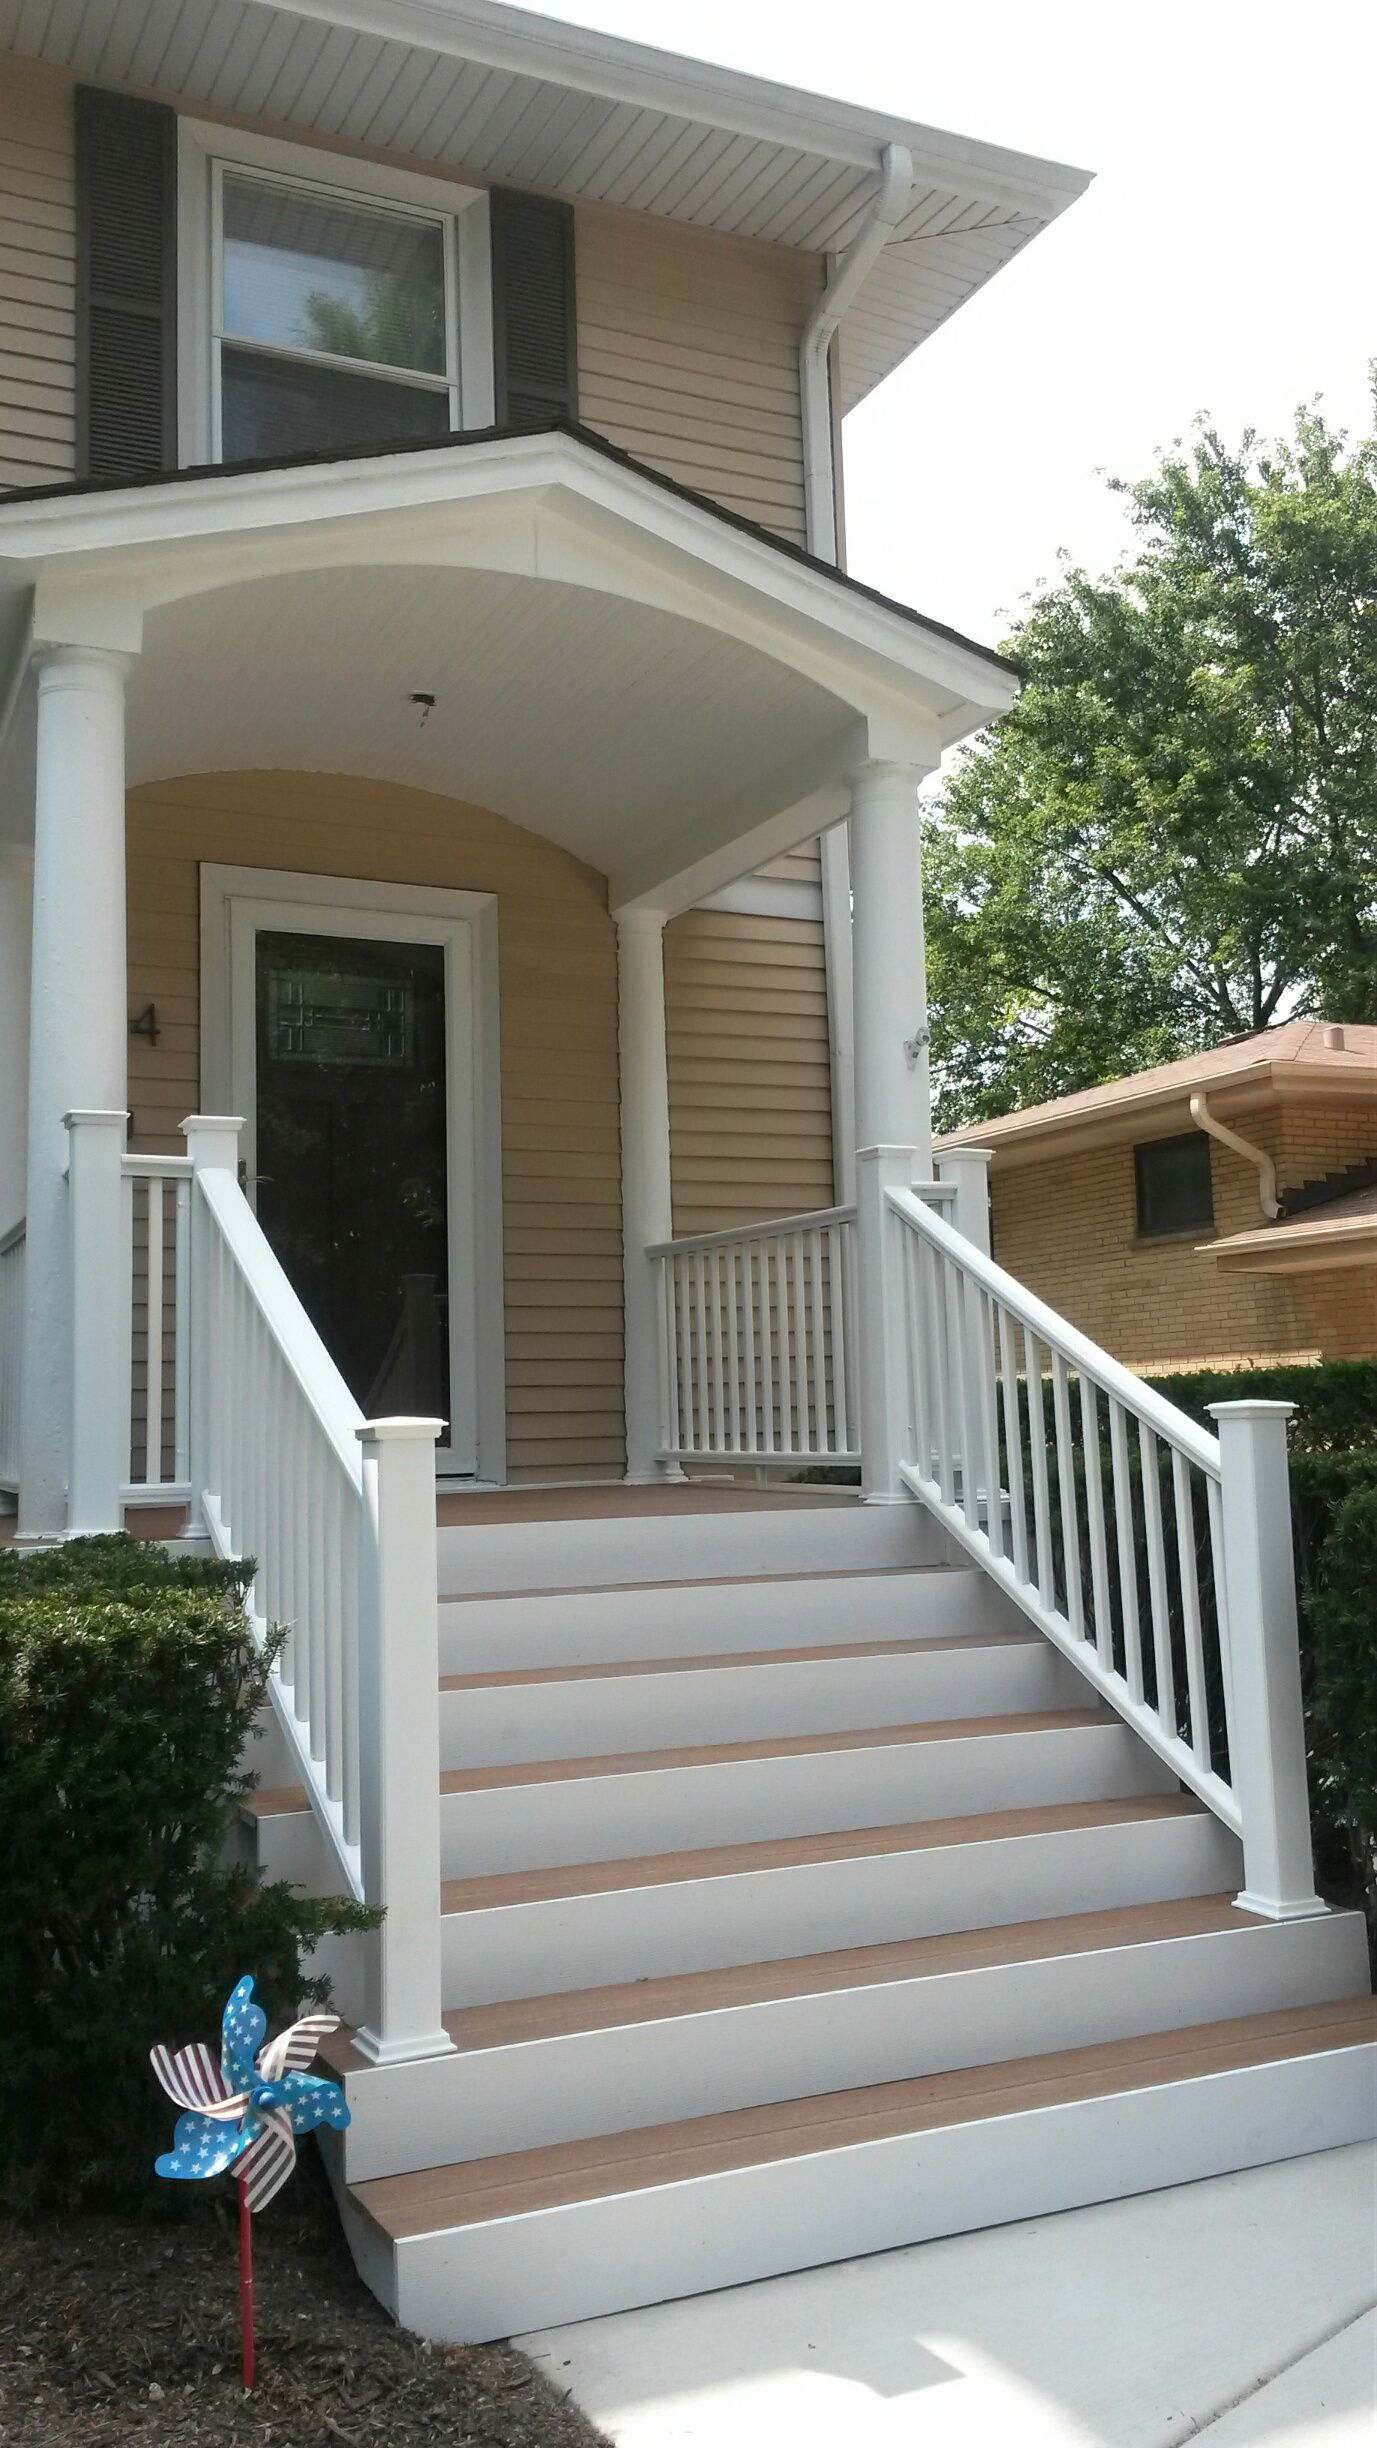 Beautiful New Stairs Using Ultradeck Composite Materials | Outdoor Stair Treads Menards